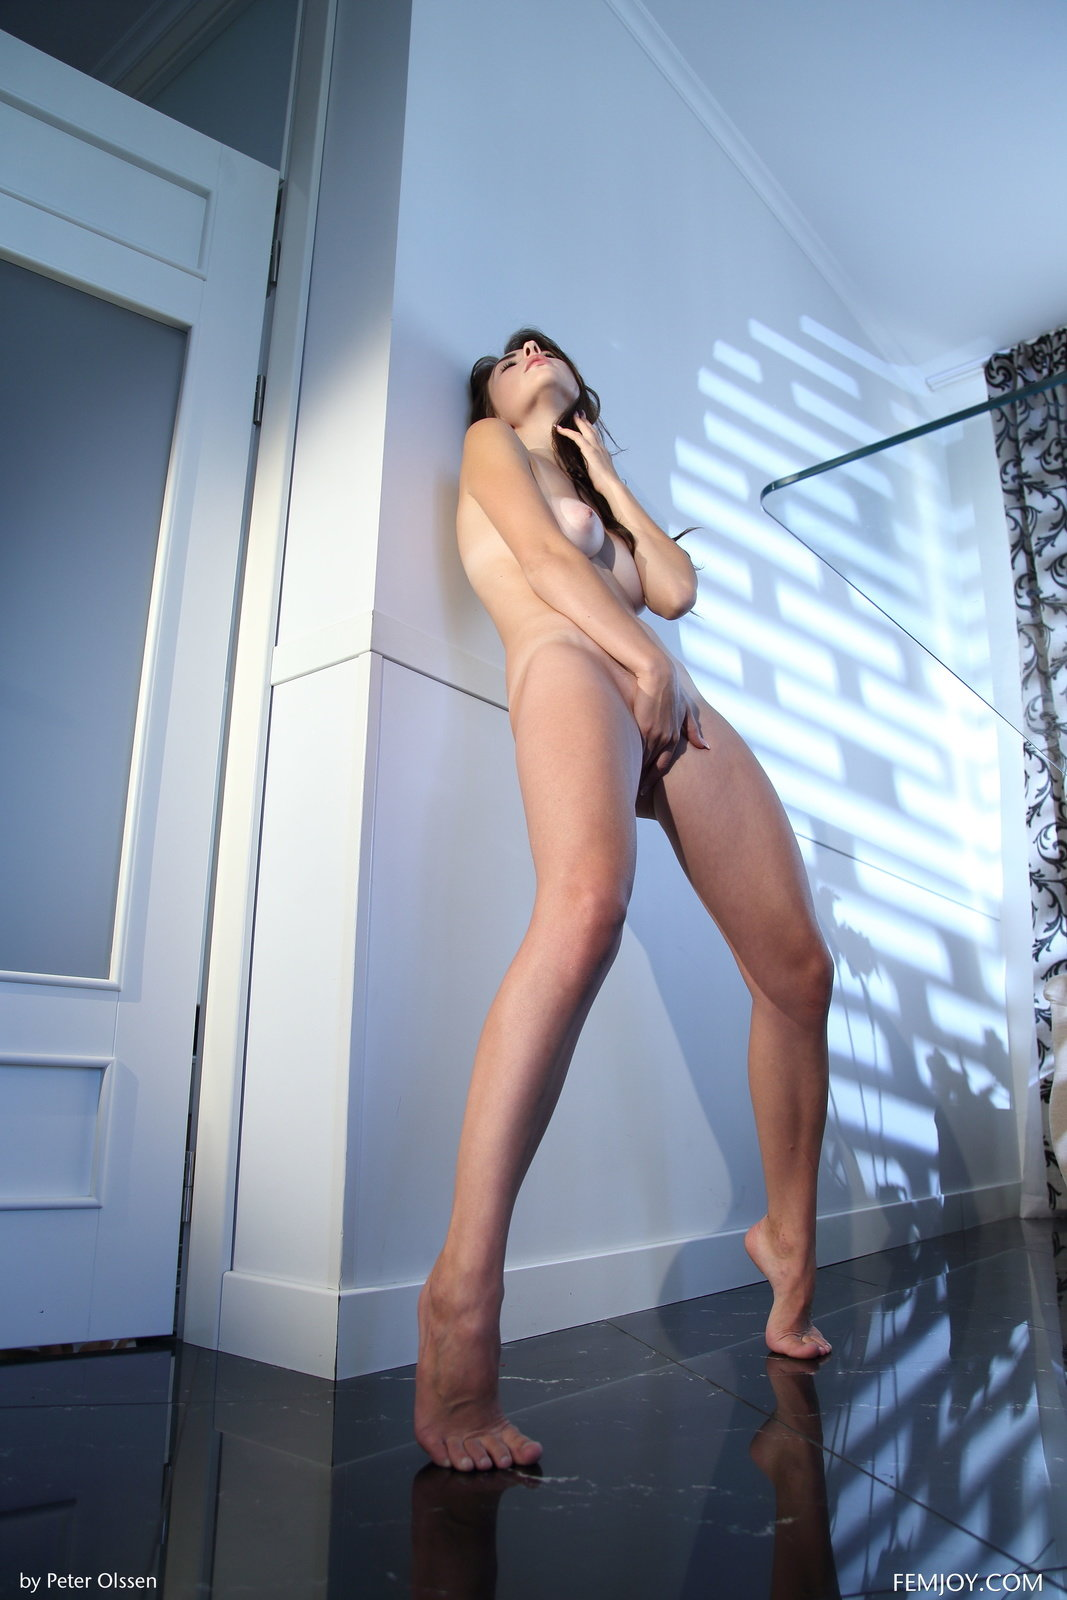 Niemira By Peter Olssen In Heavenly Pleasure ::: Femjoy :::